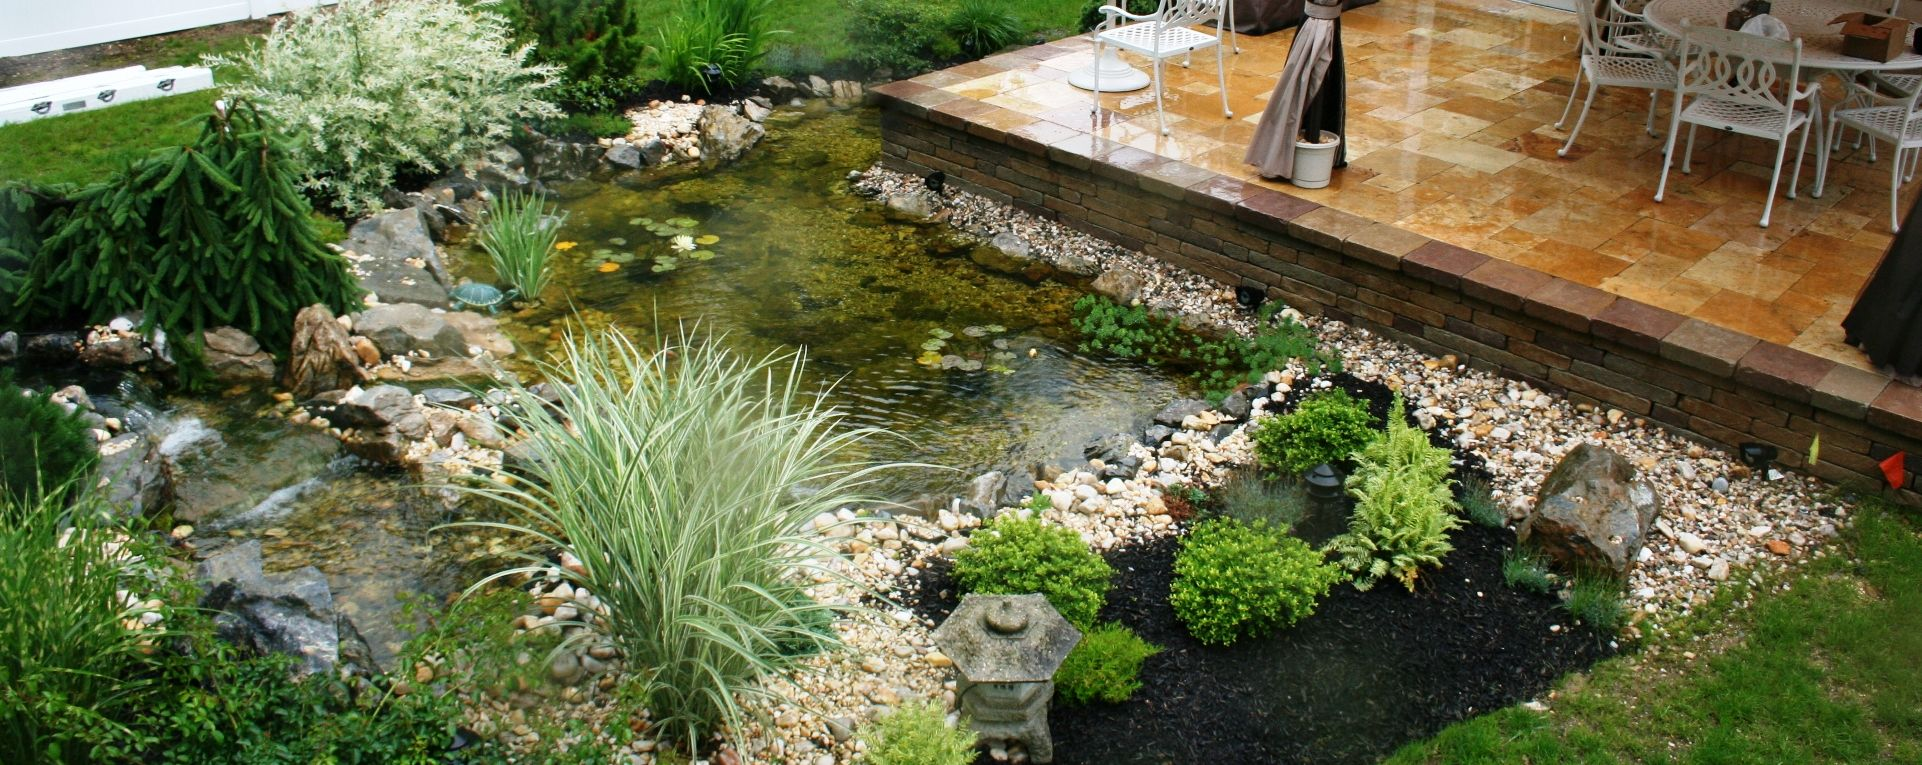 Landscape design long island ny landscaping companies for Backyard koi pond ideas